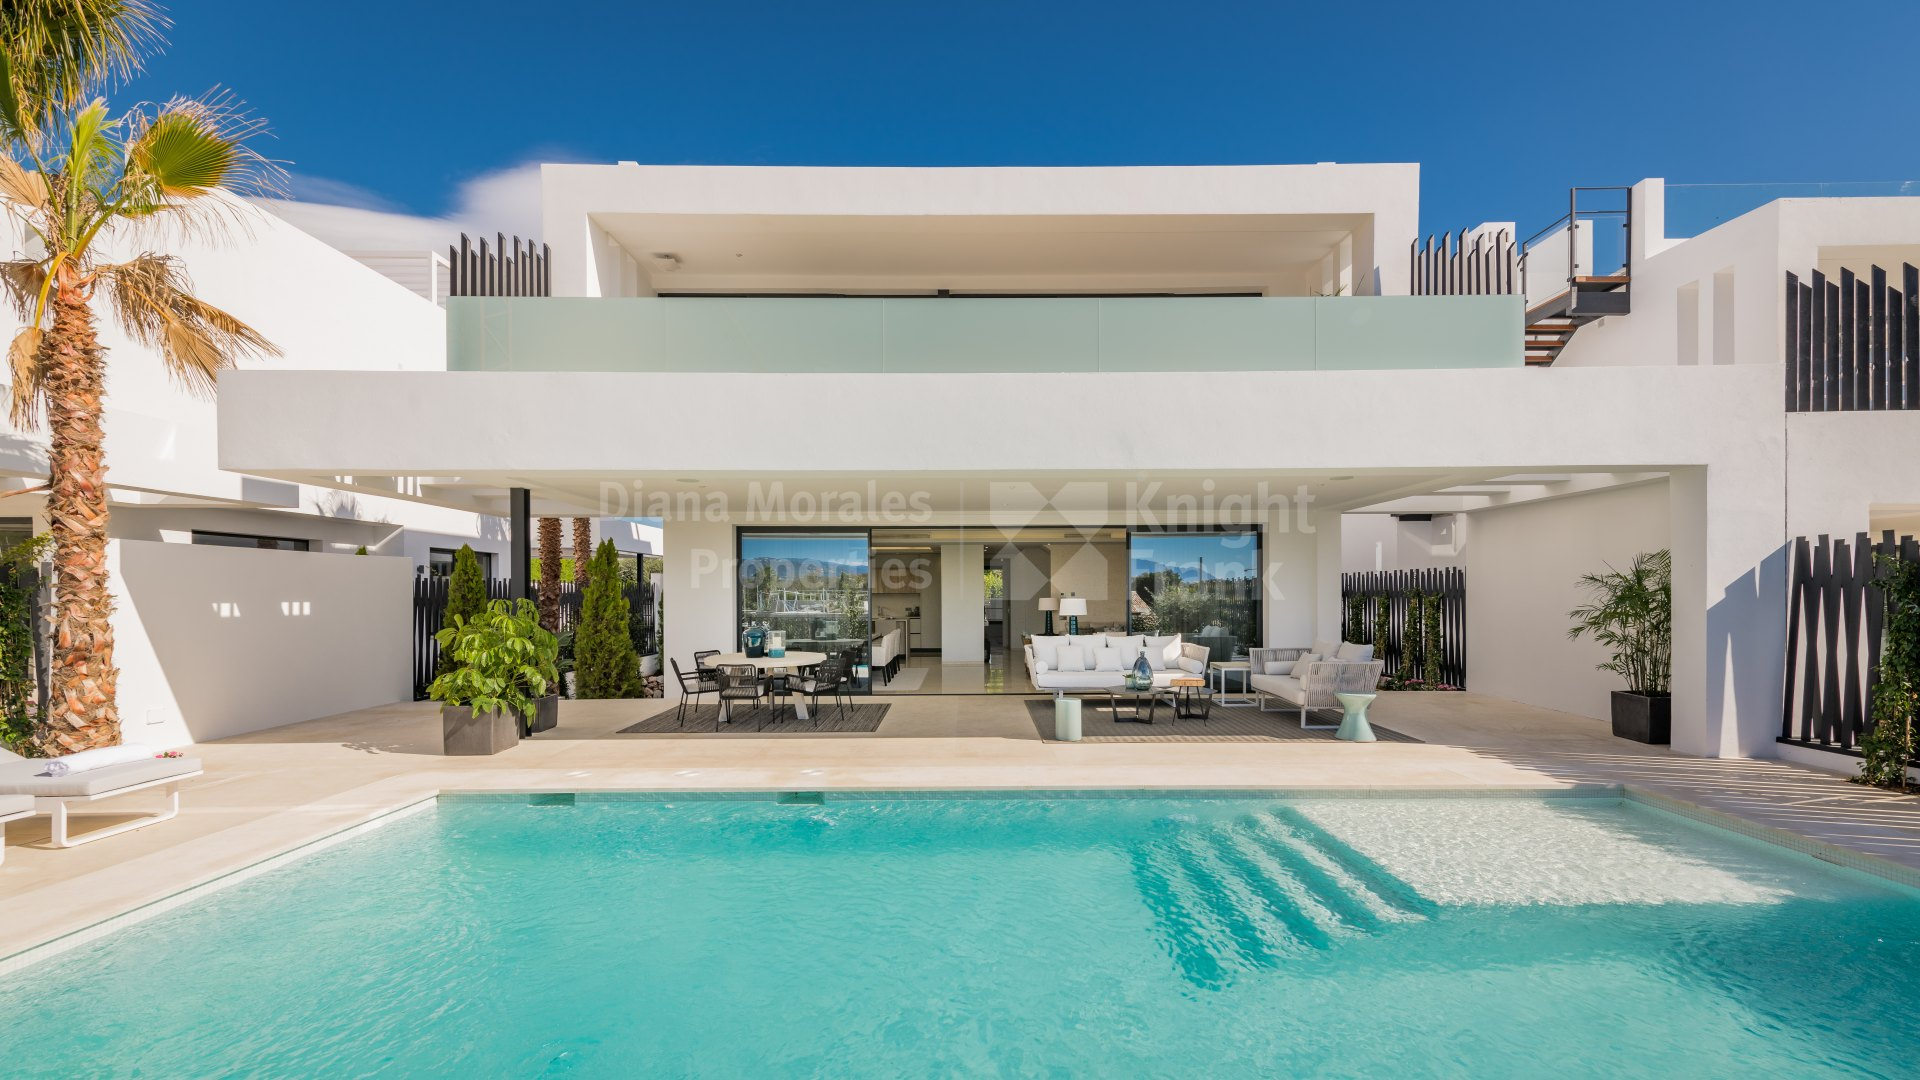 Marbella city, 7 exclusive villas in the heart of the Golden Mile